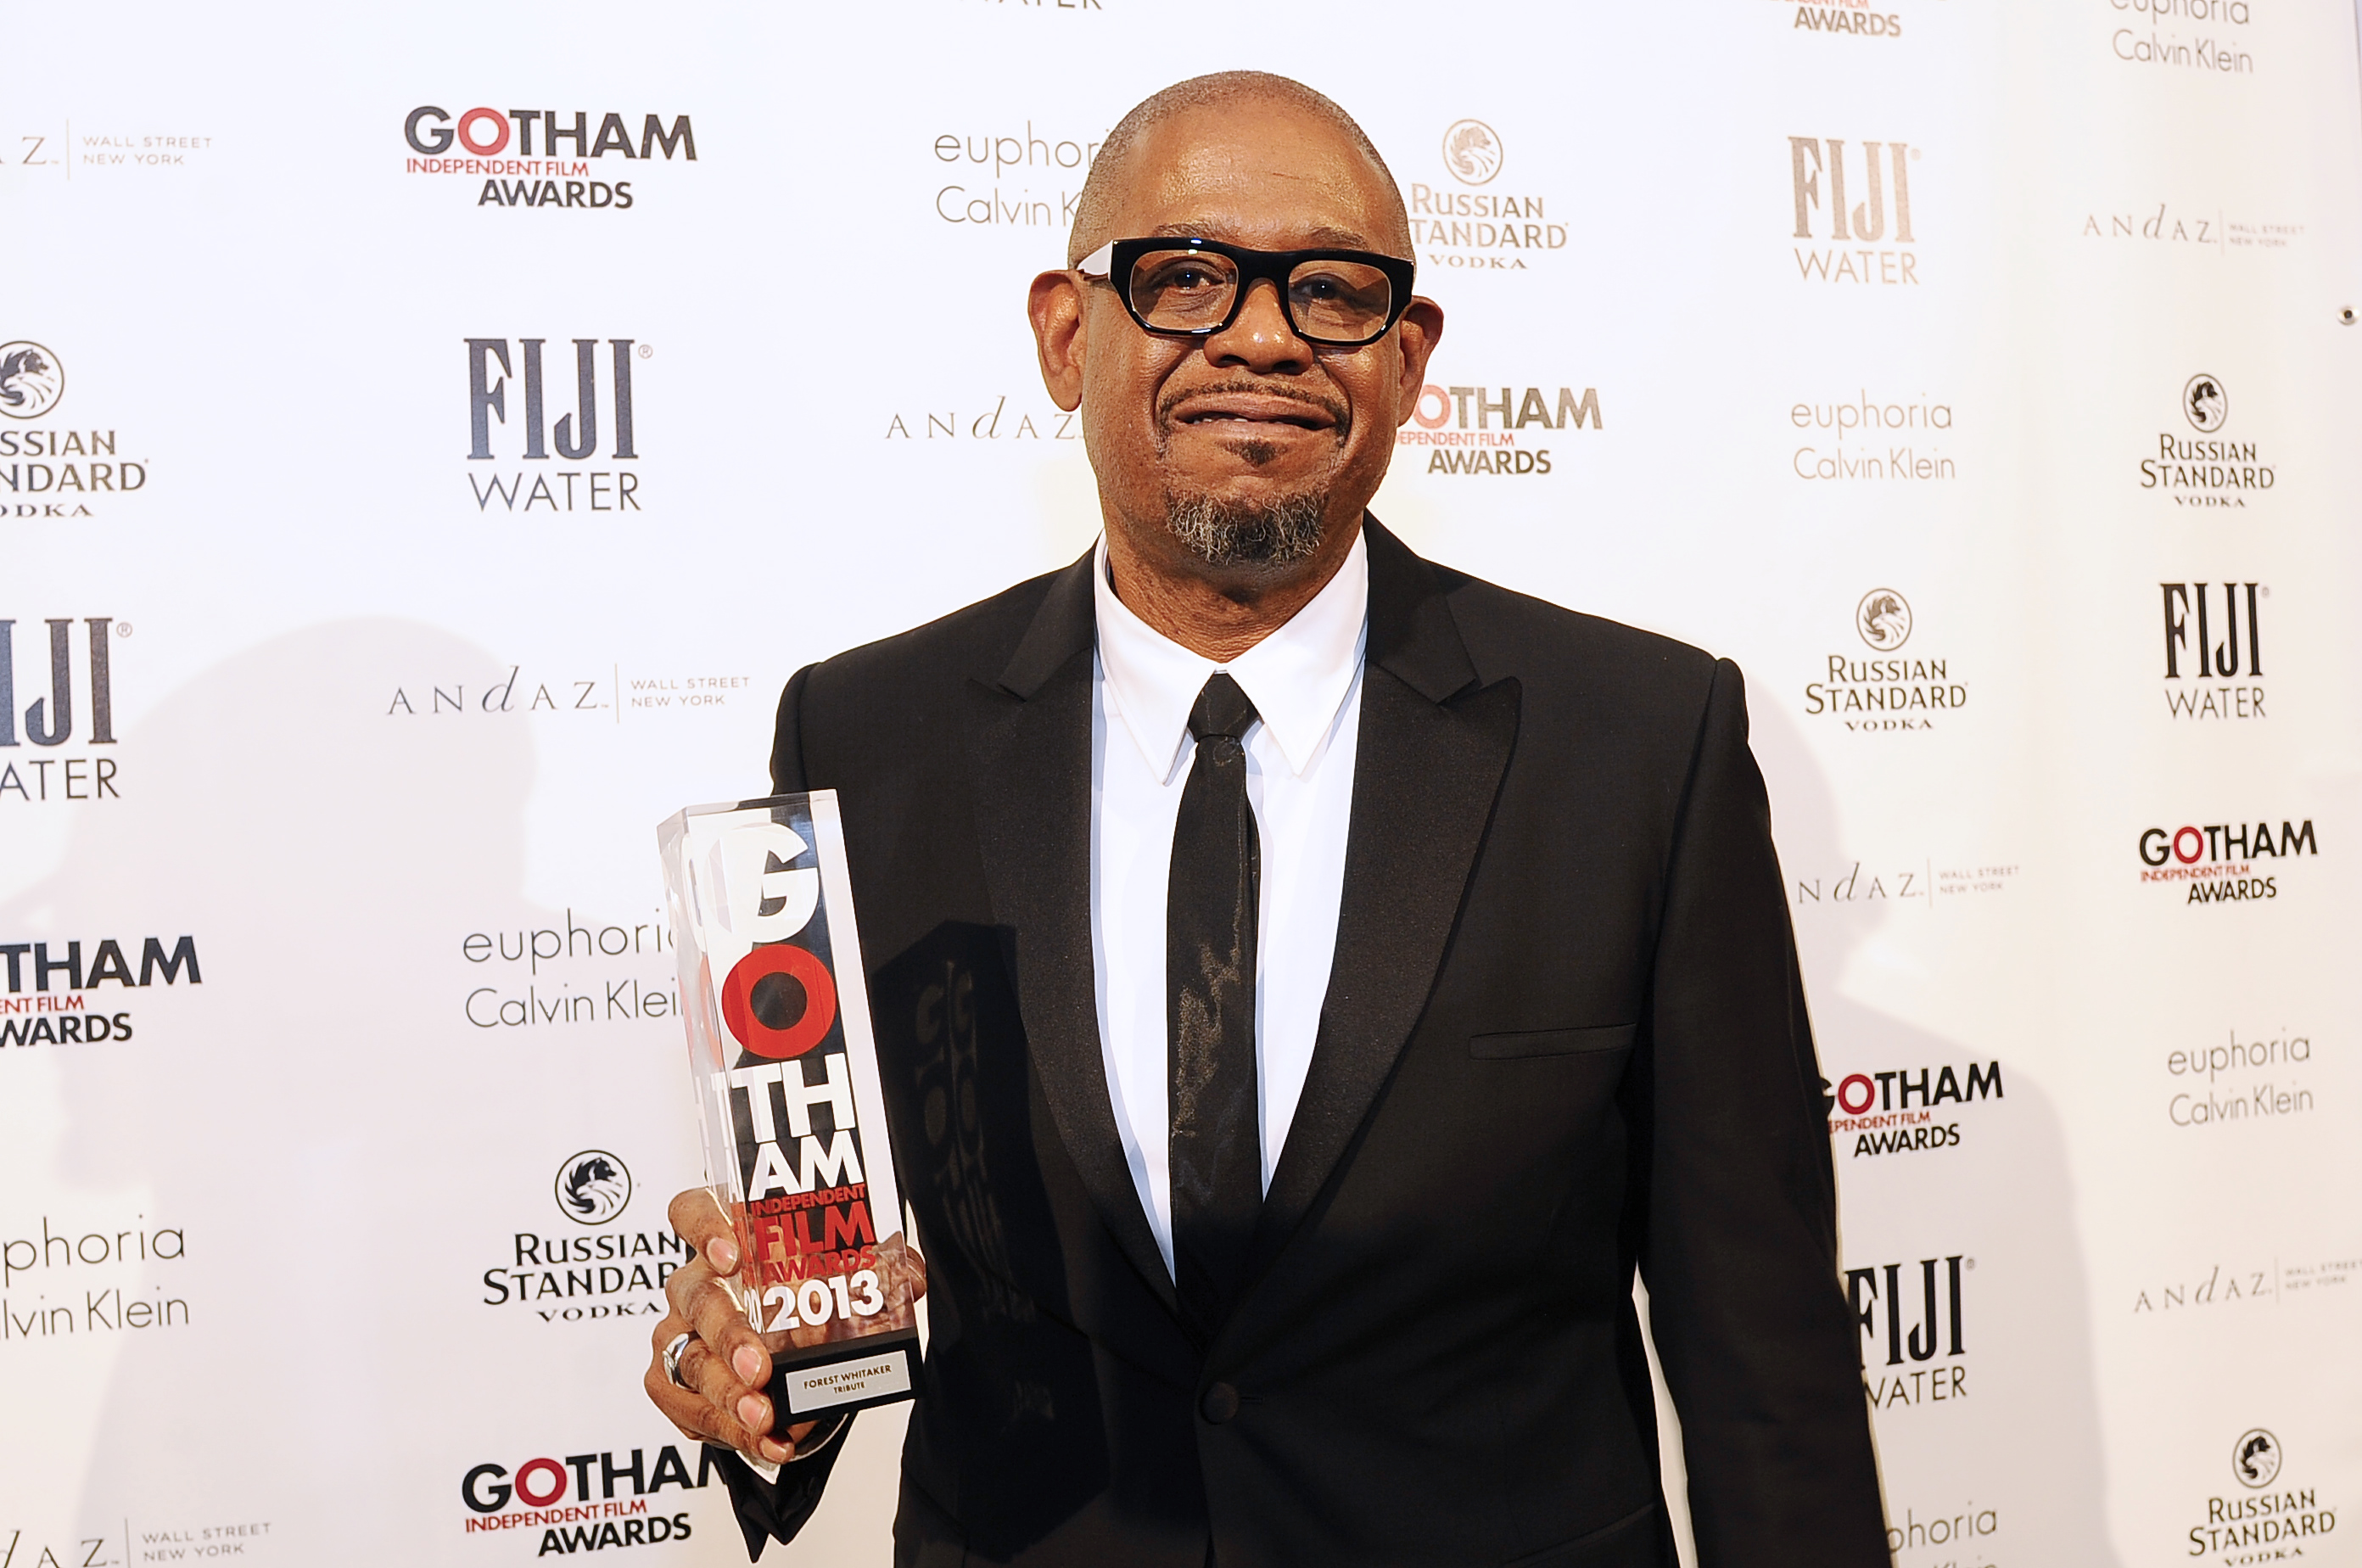 Forest Whitaker at the Gotham Awards